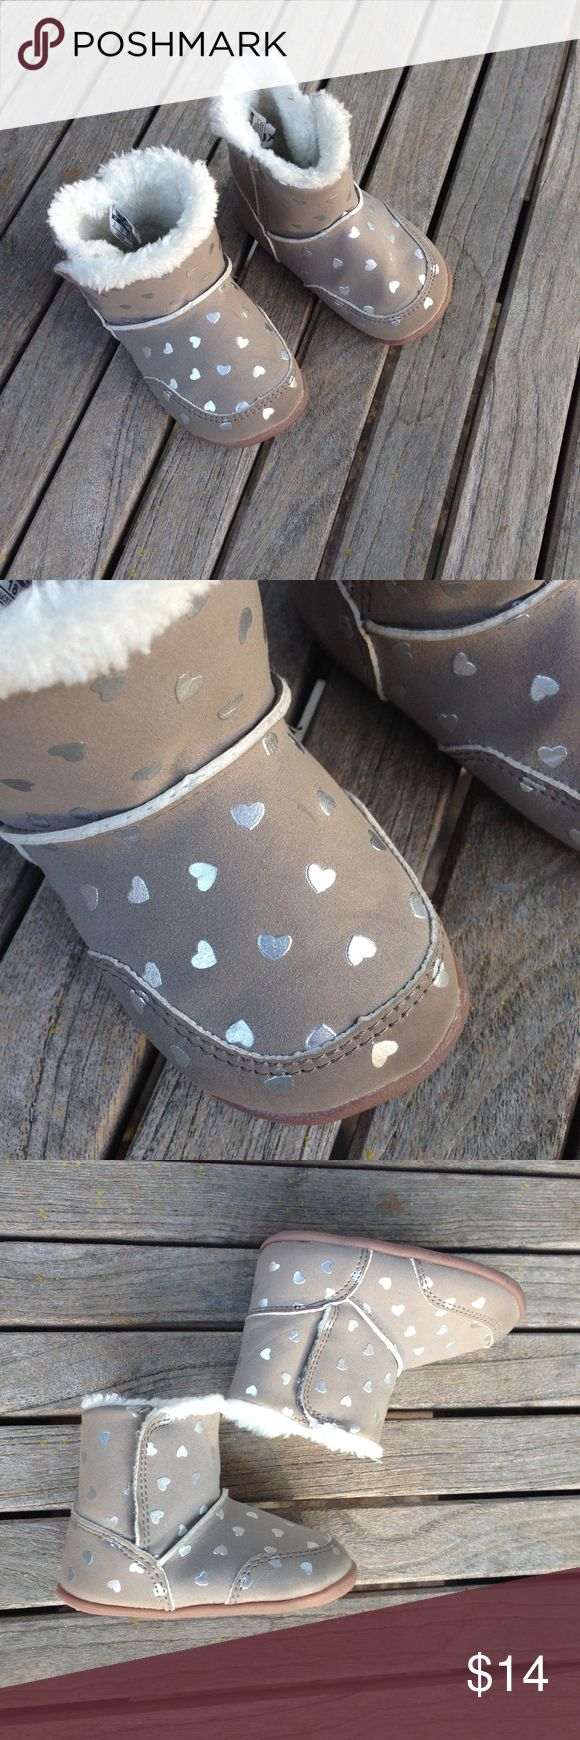 Carters Baby Stand 3 Silver Heart Faux Fur Booties What little darling wouldn't love these with hook and loop fasteners on the side and rubber soles Maker: Carters Size 3 Very good pre-owned worn condition and coming from a non smoking home. Carters Shoes Boots